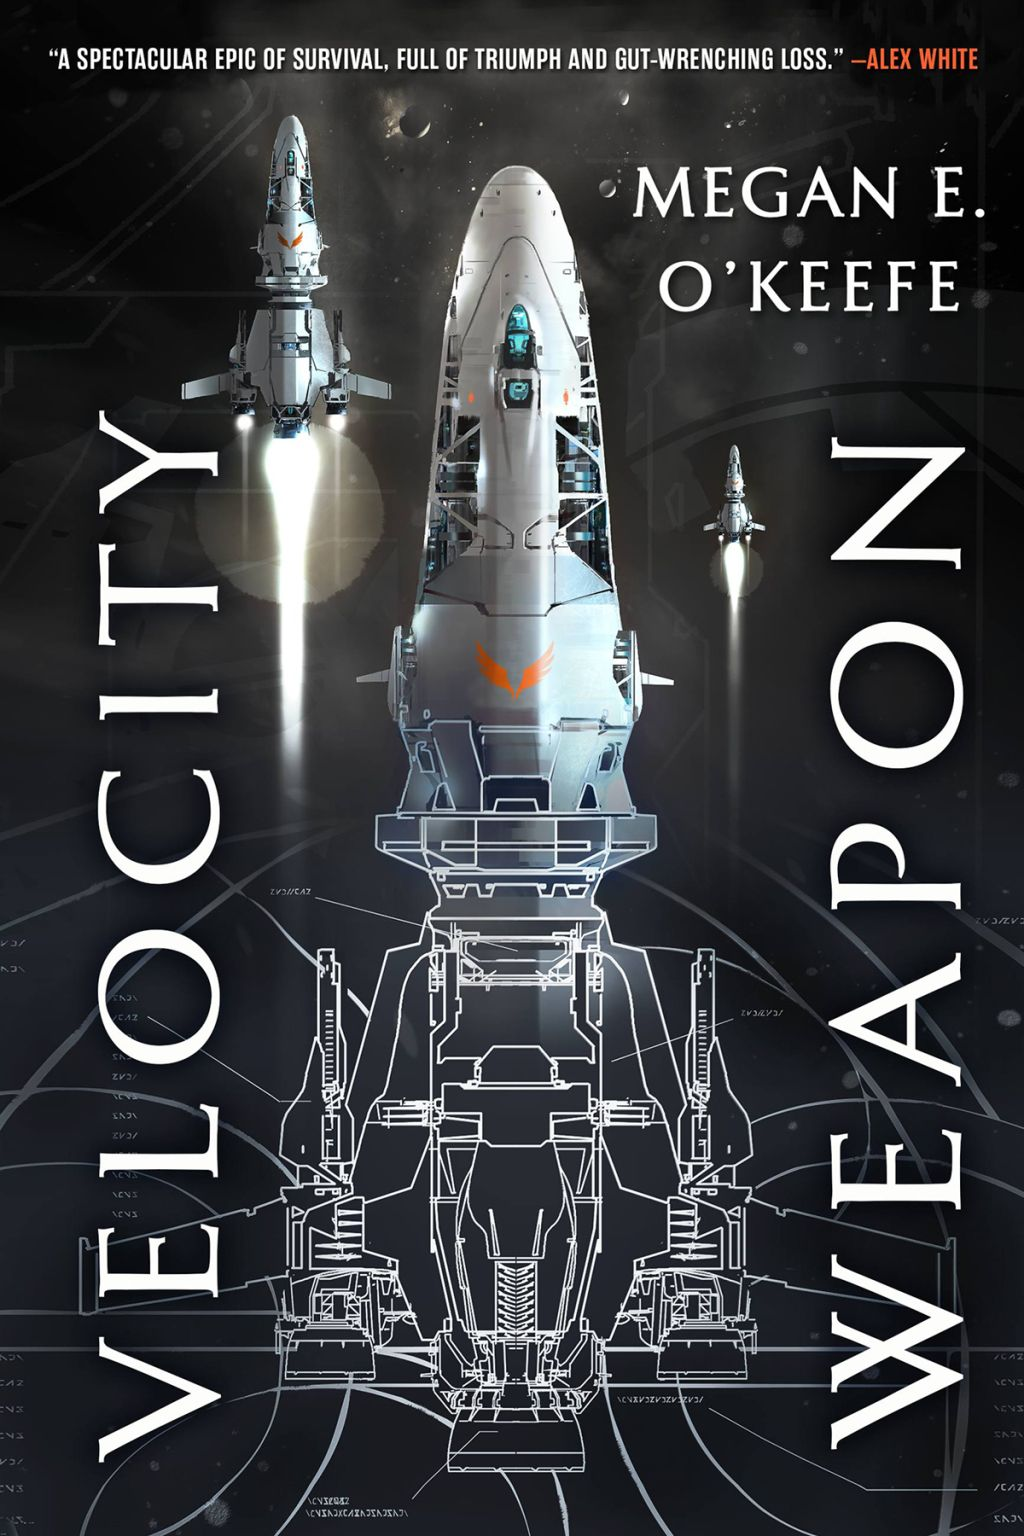 Velocity Weapon (2019, Little, Brown Book Group Limited)